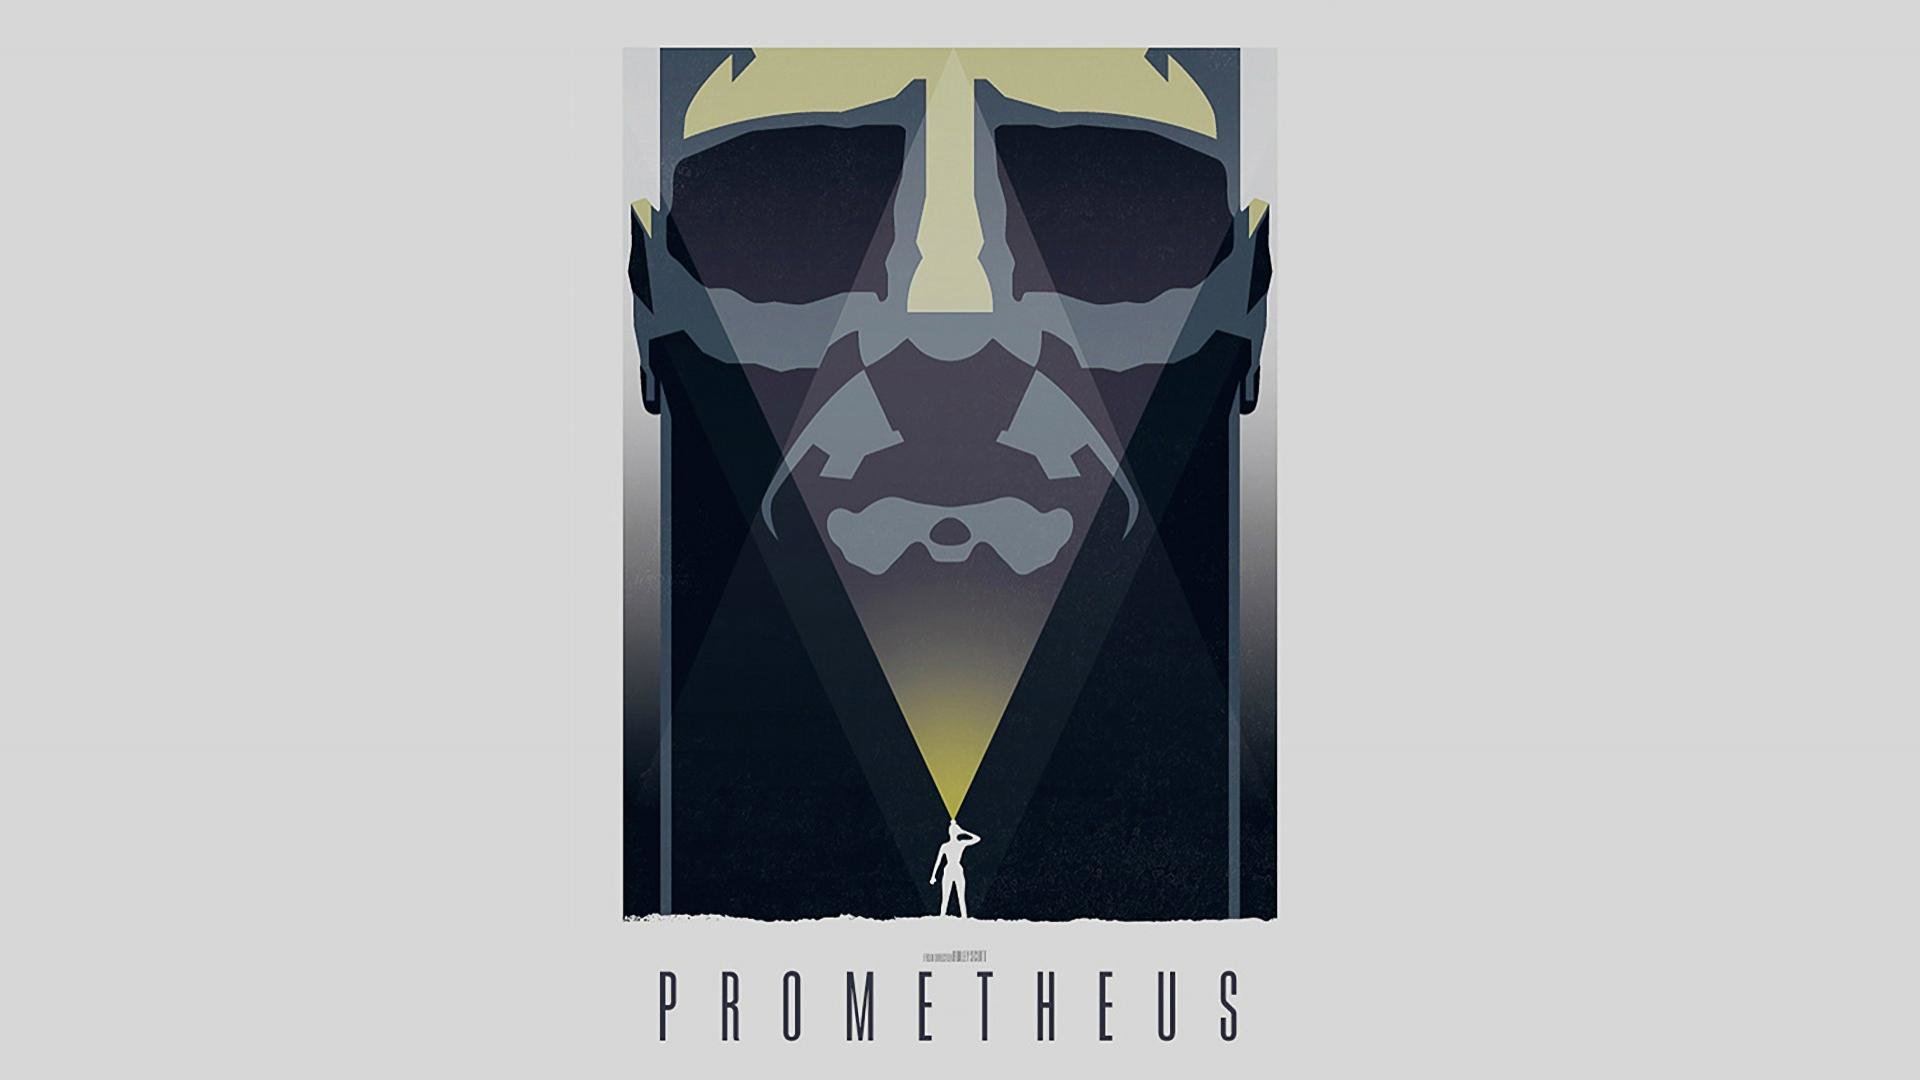 Free Download Prometheus Background Id 274383 Full Hd 1080p For Pc